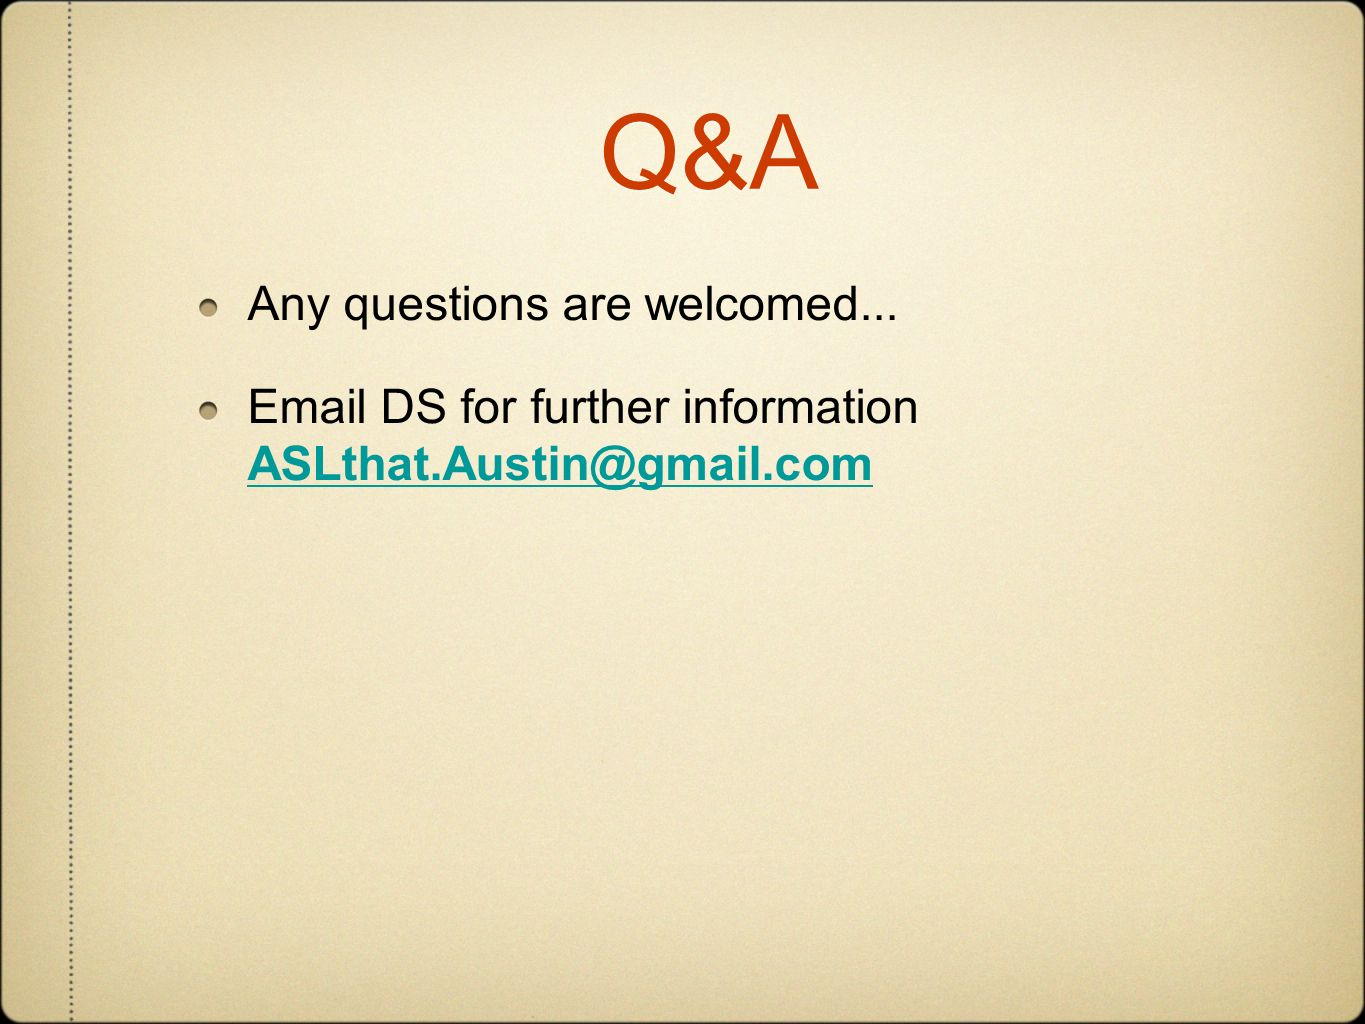 Q&A Any questions are welcomed...